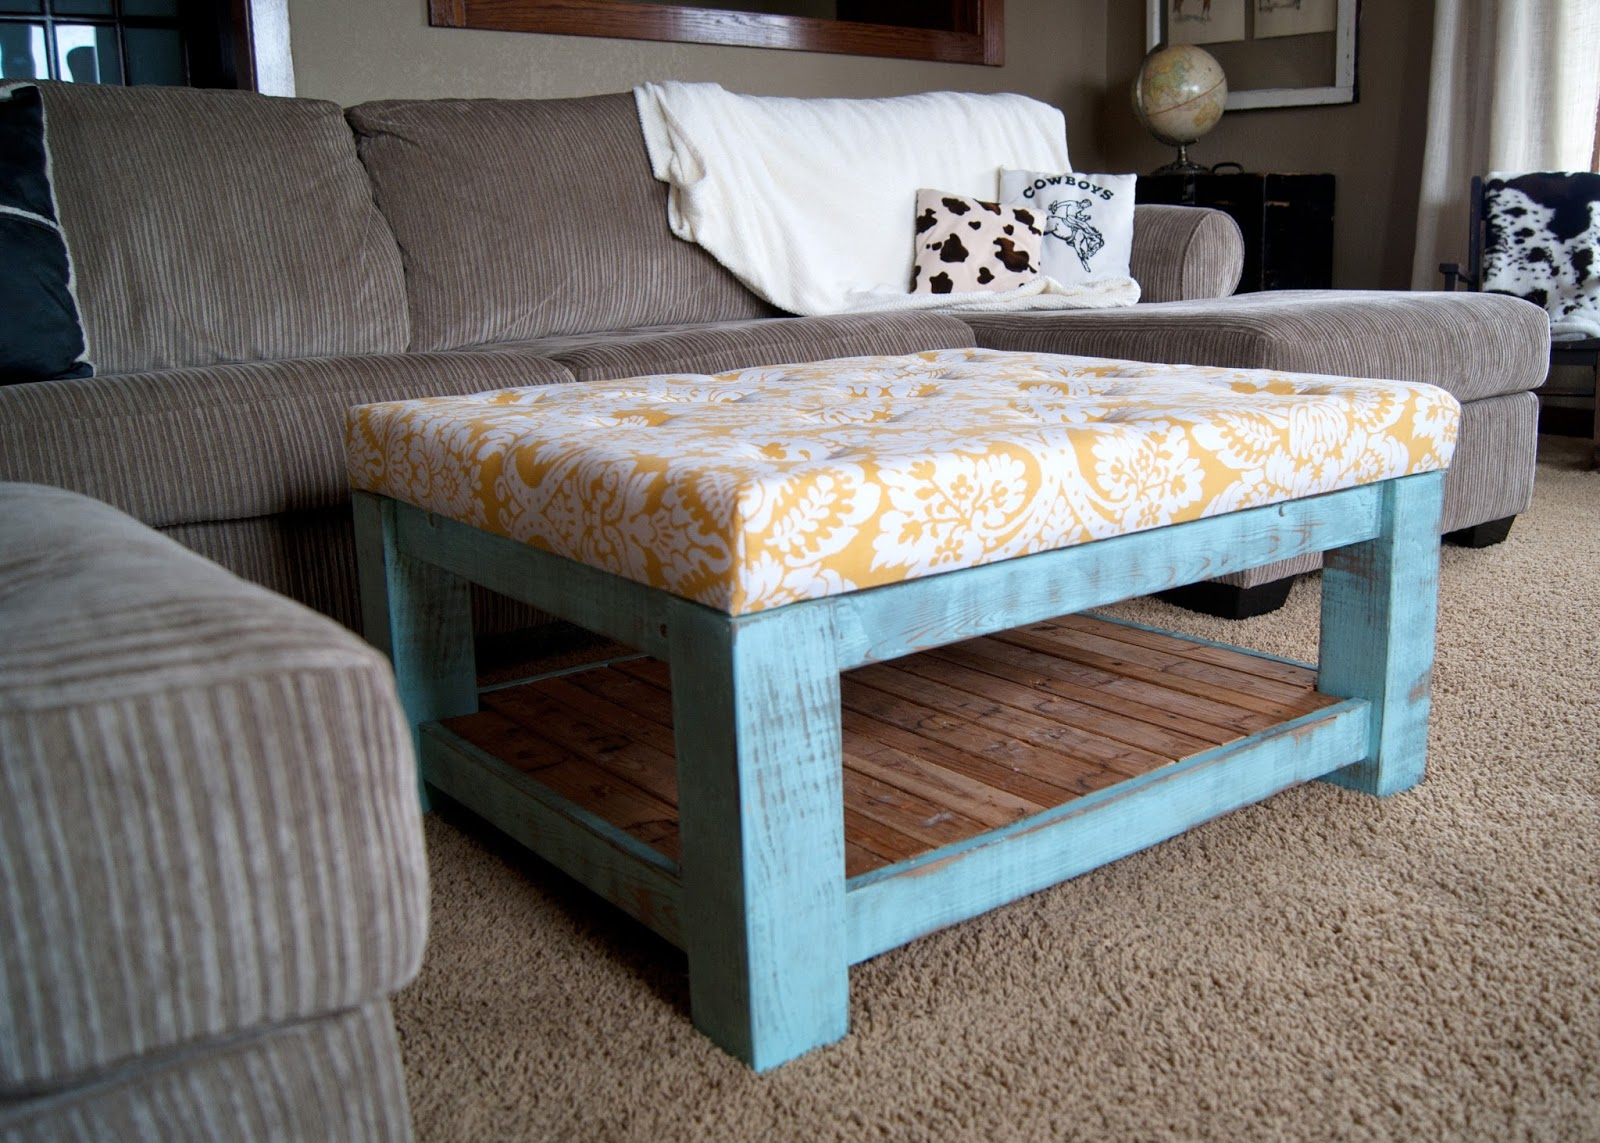 Diy Ottoman For Under 100 Averie Lane Diy Ottoman For Under 100